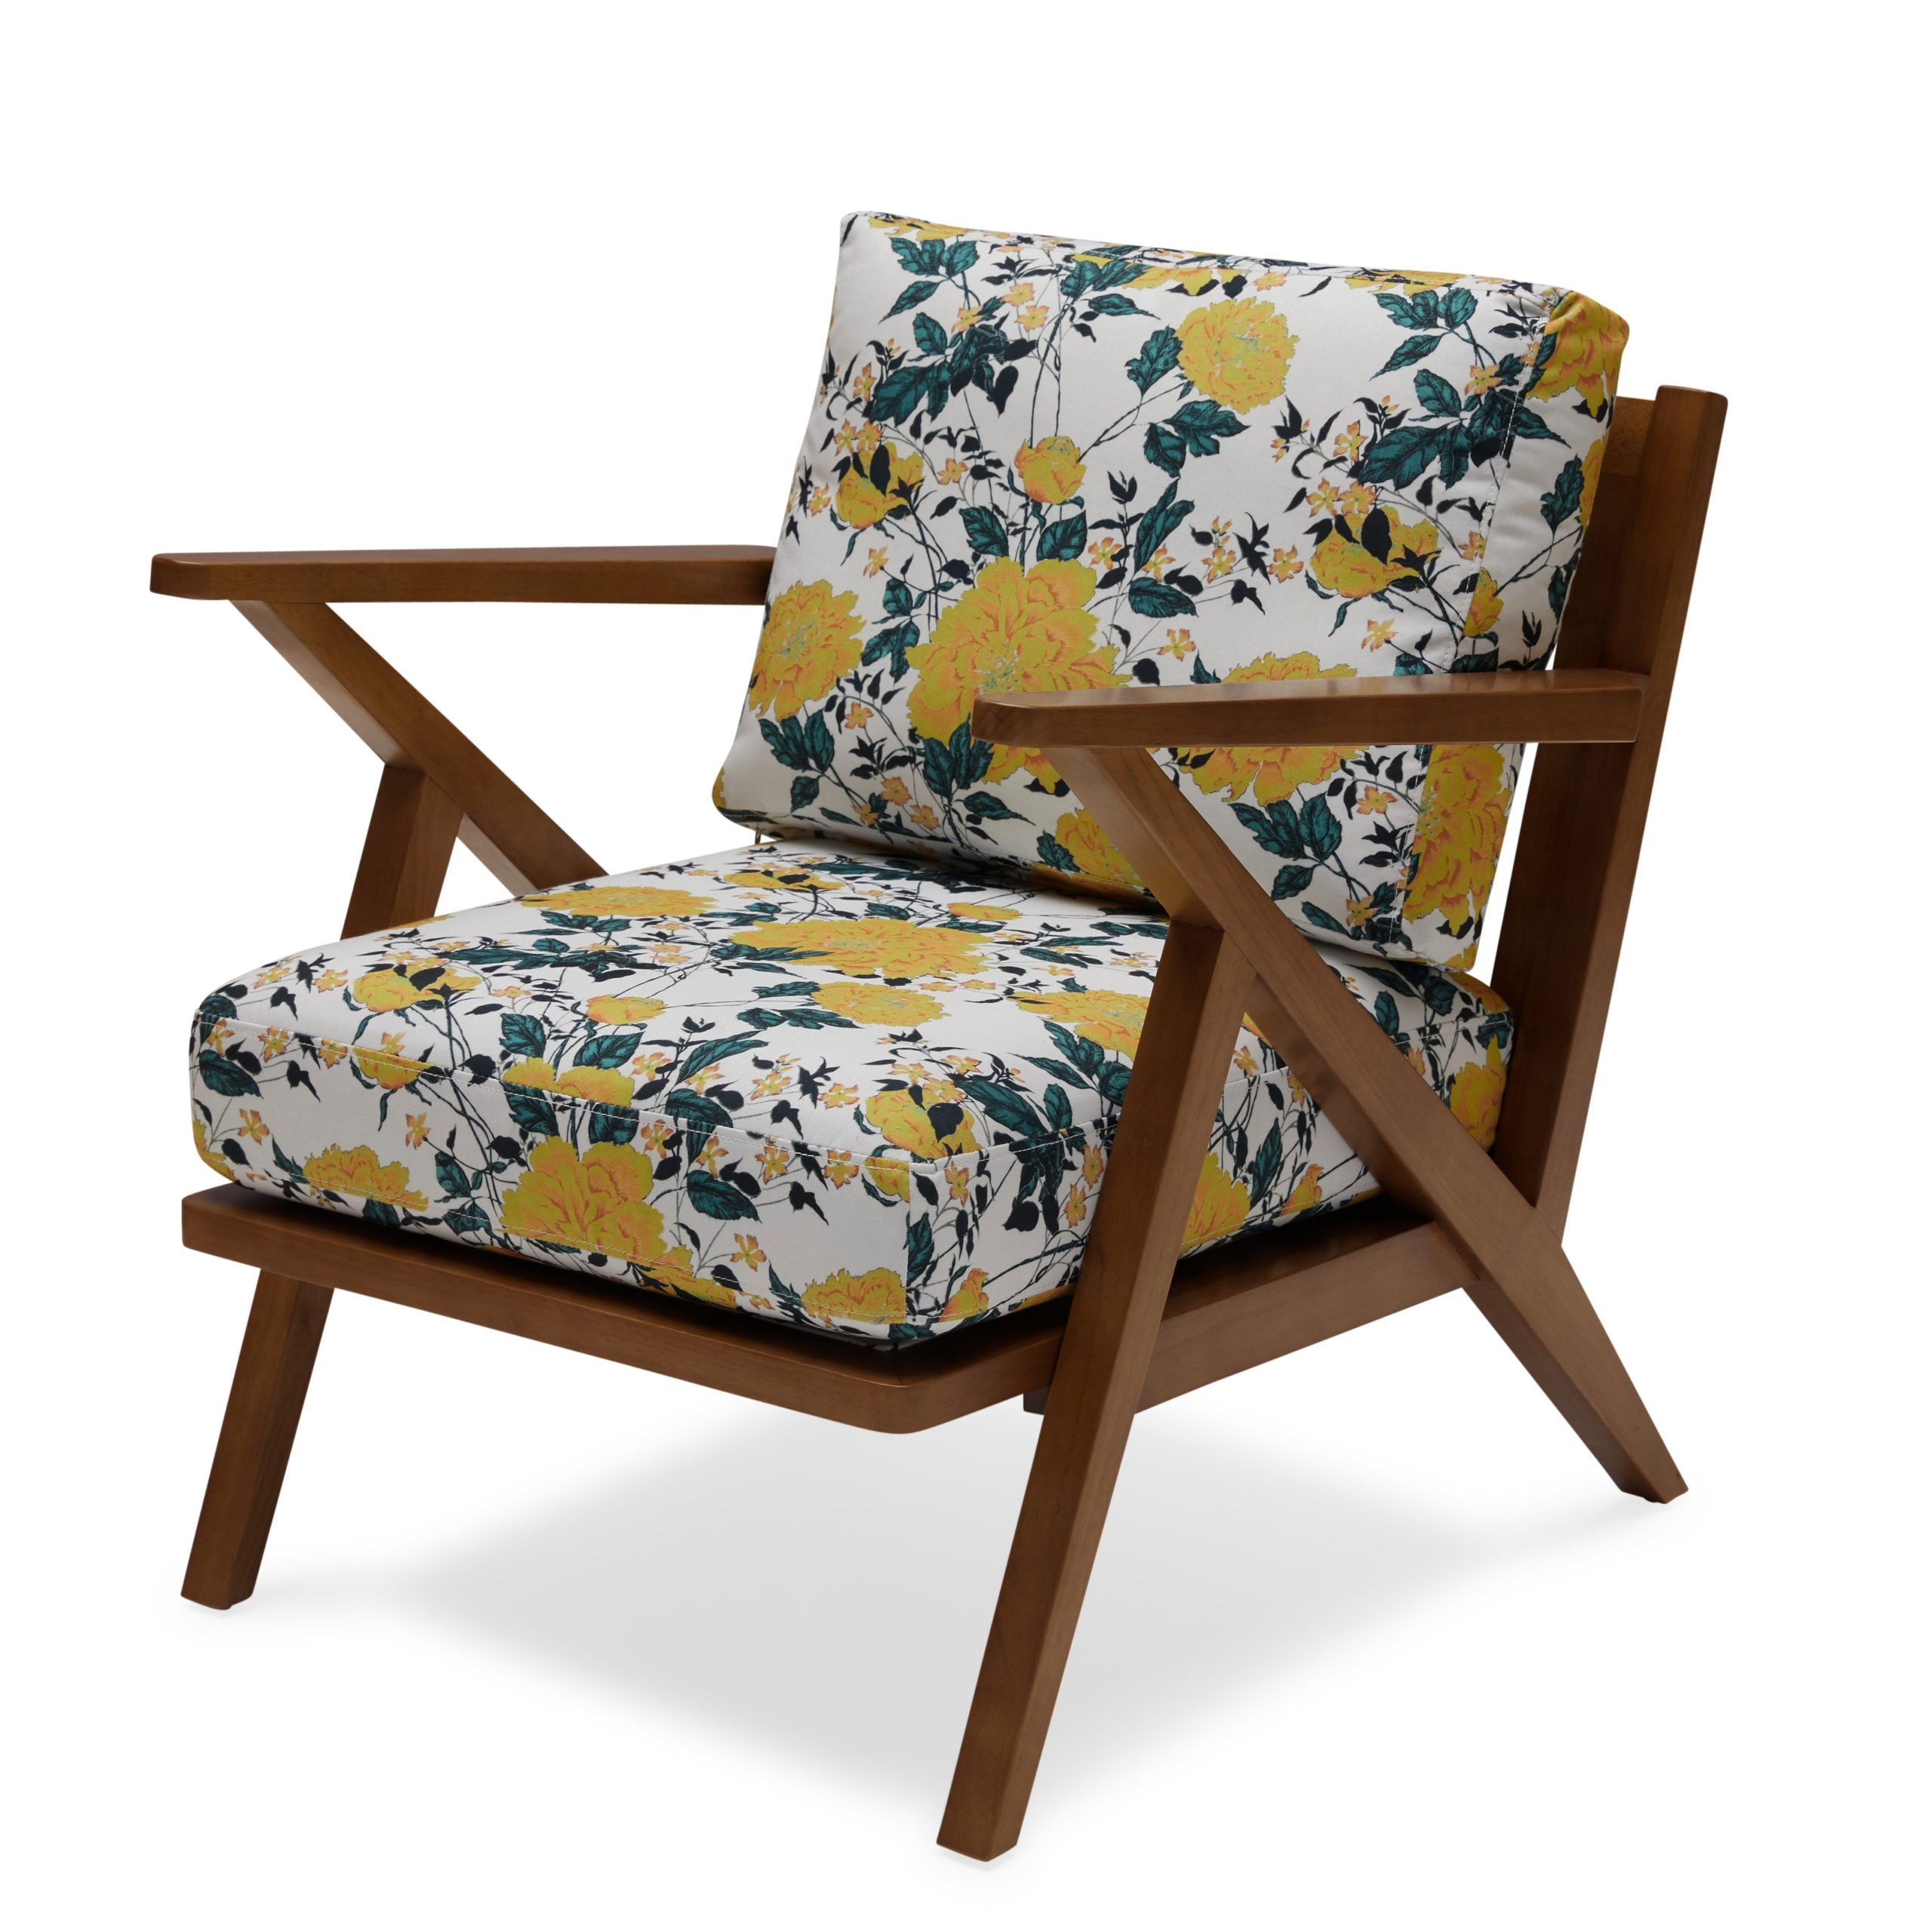 Vintage Floral Mid-Century Accent Chair by Drew Barrymore Flower Home